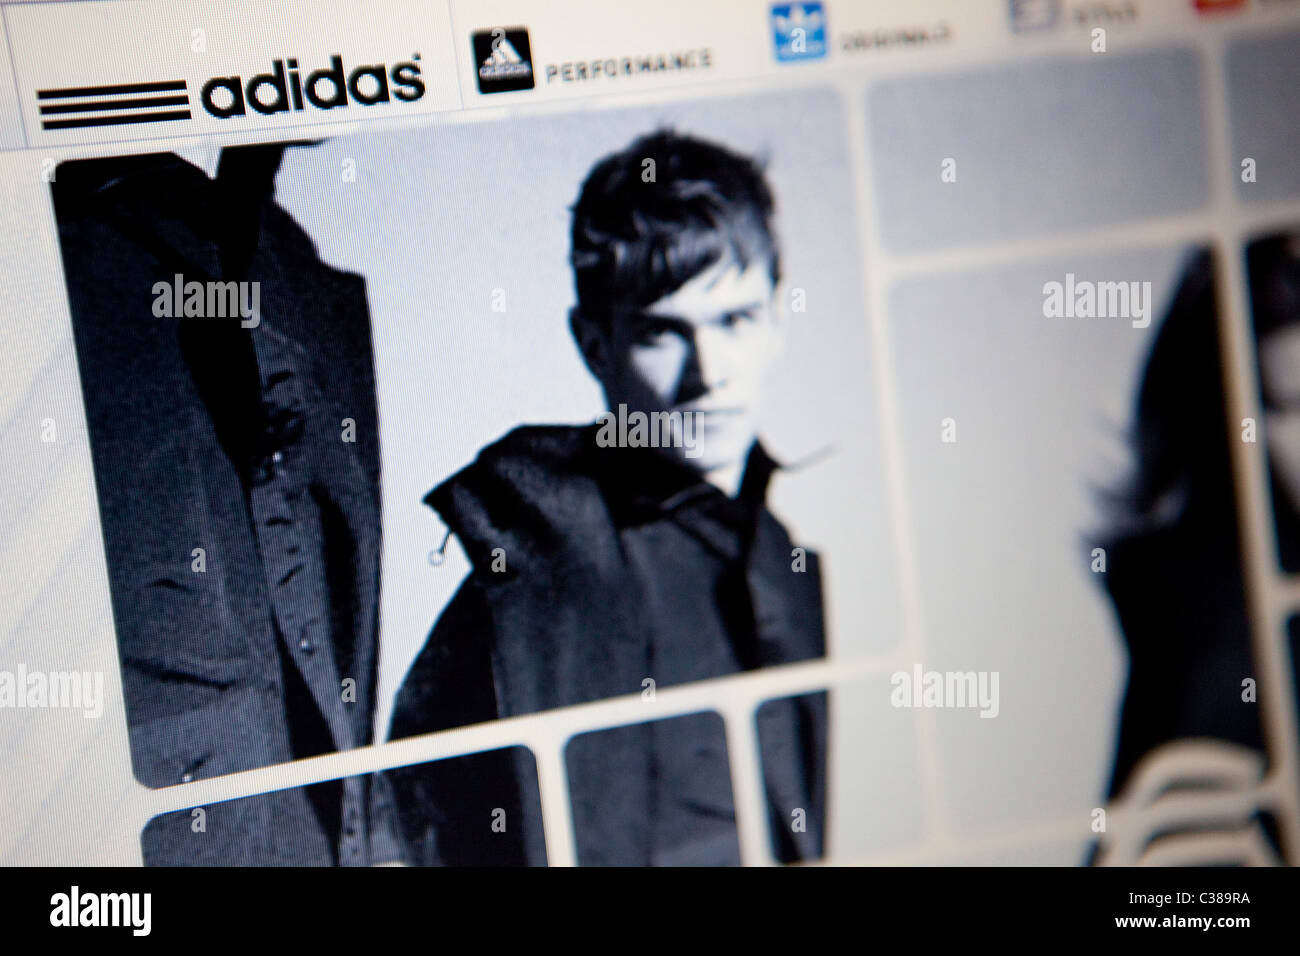 The ADIDAS website. - Stock Image